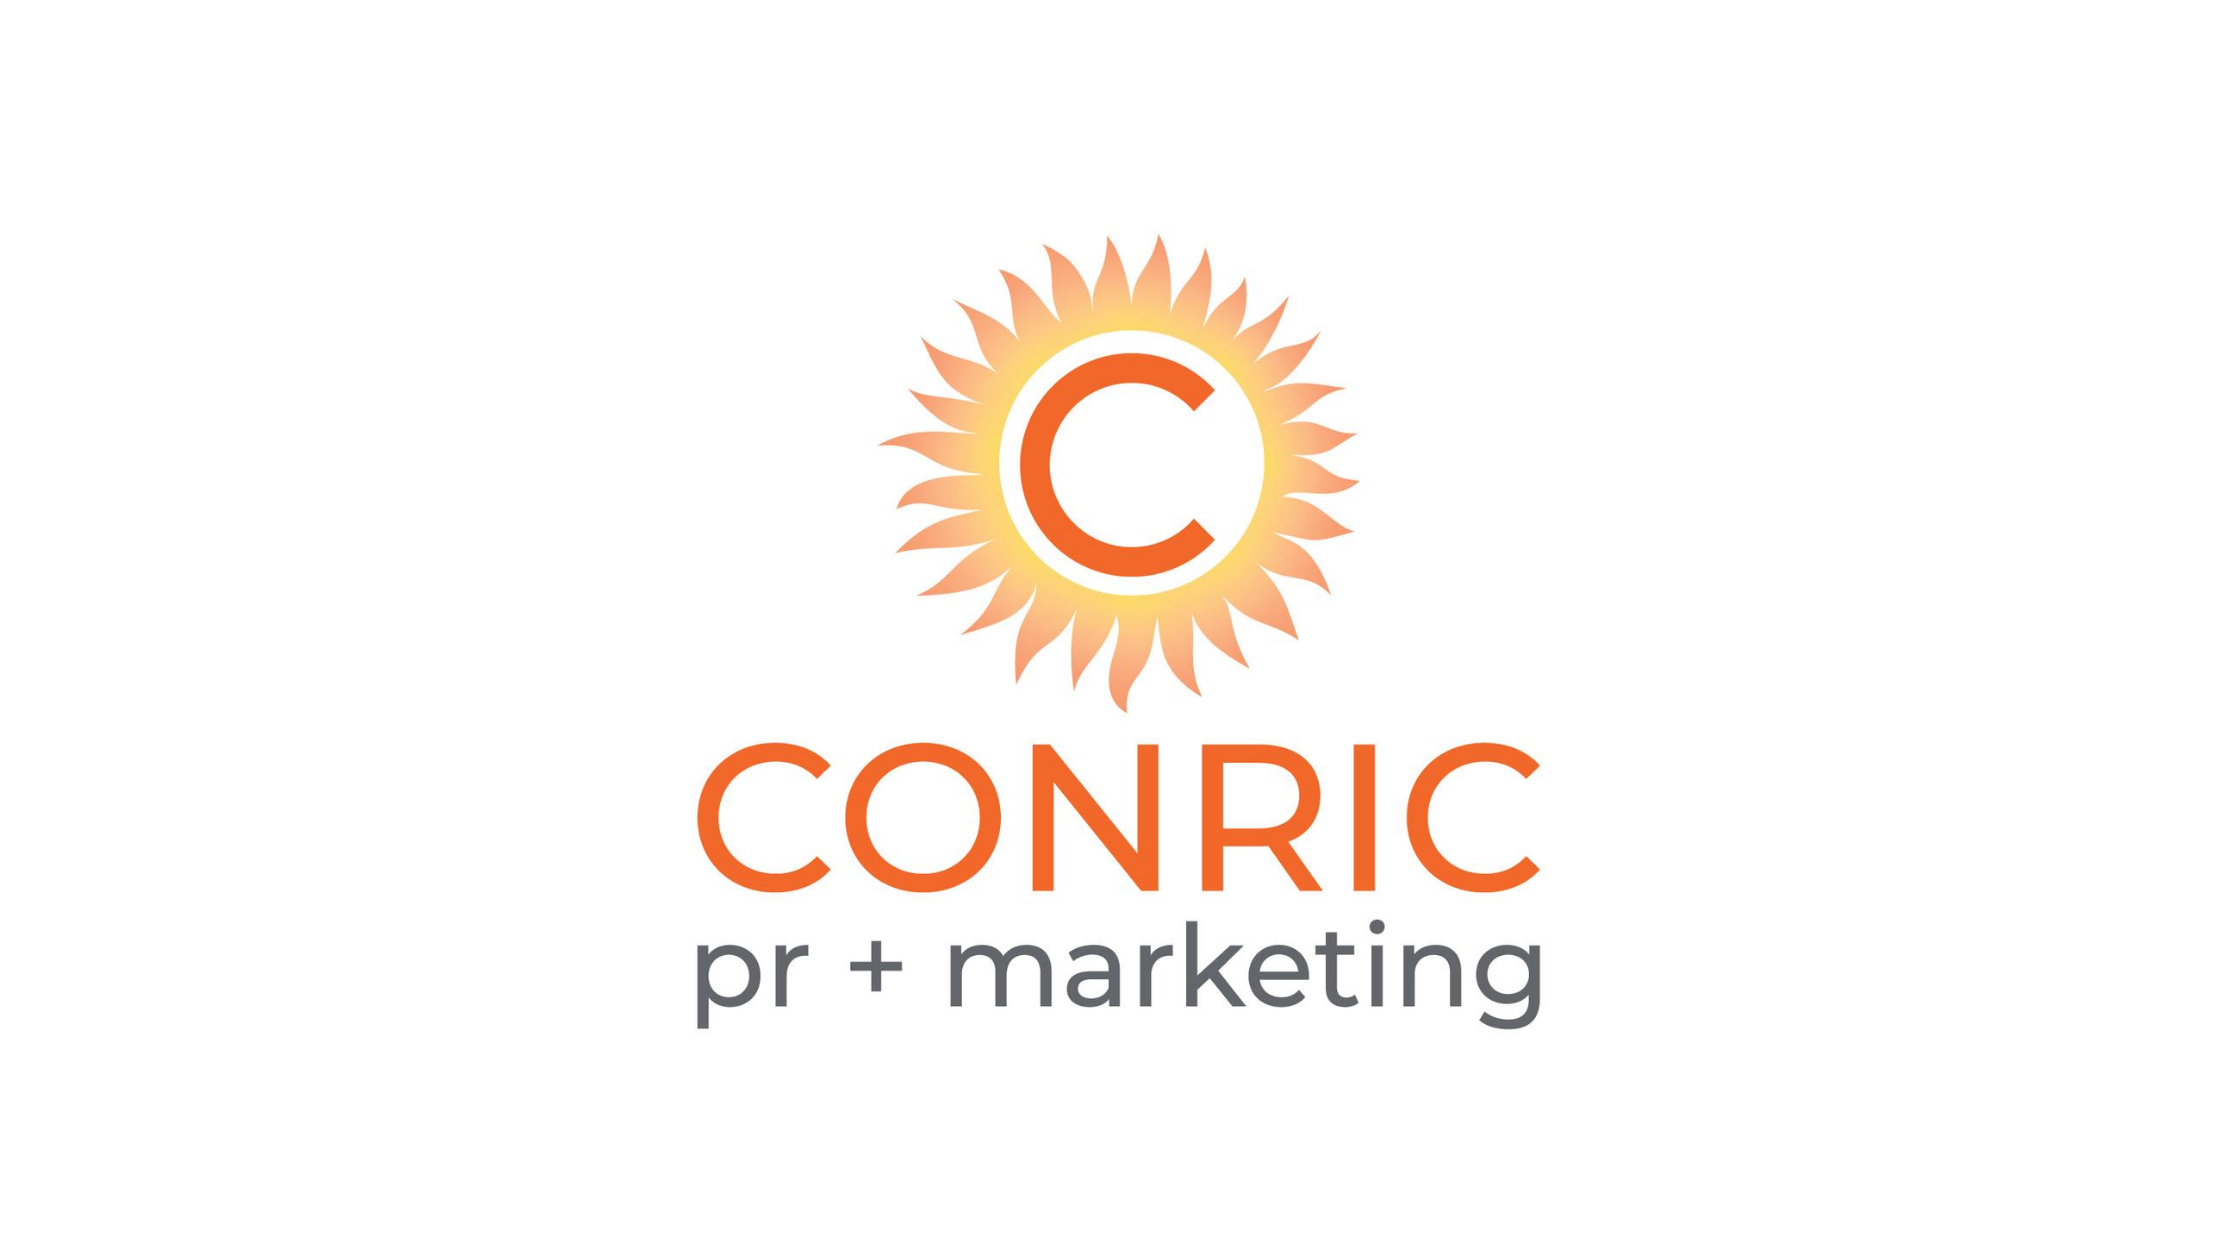 CONRIC pr + marketing partners with Google to support local businesses